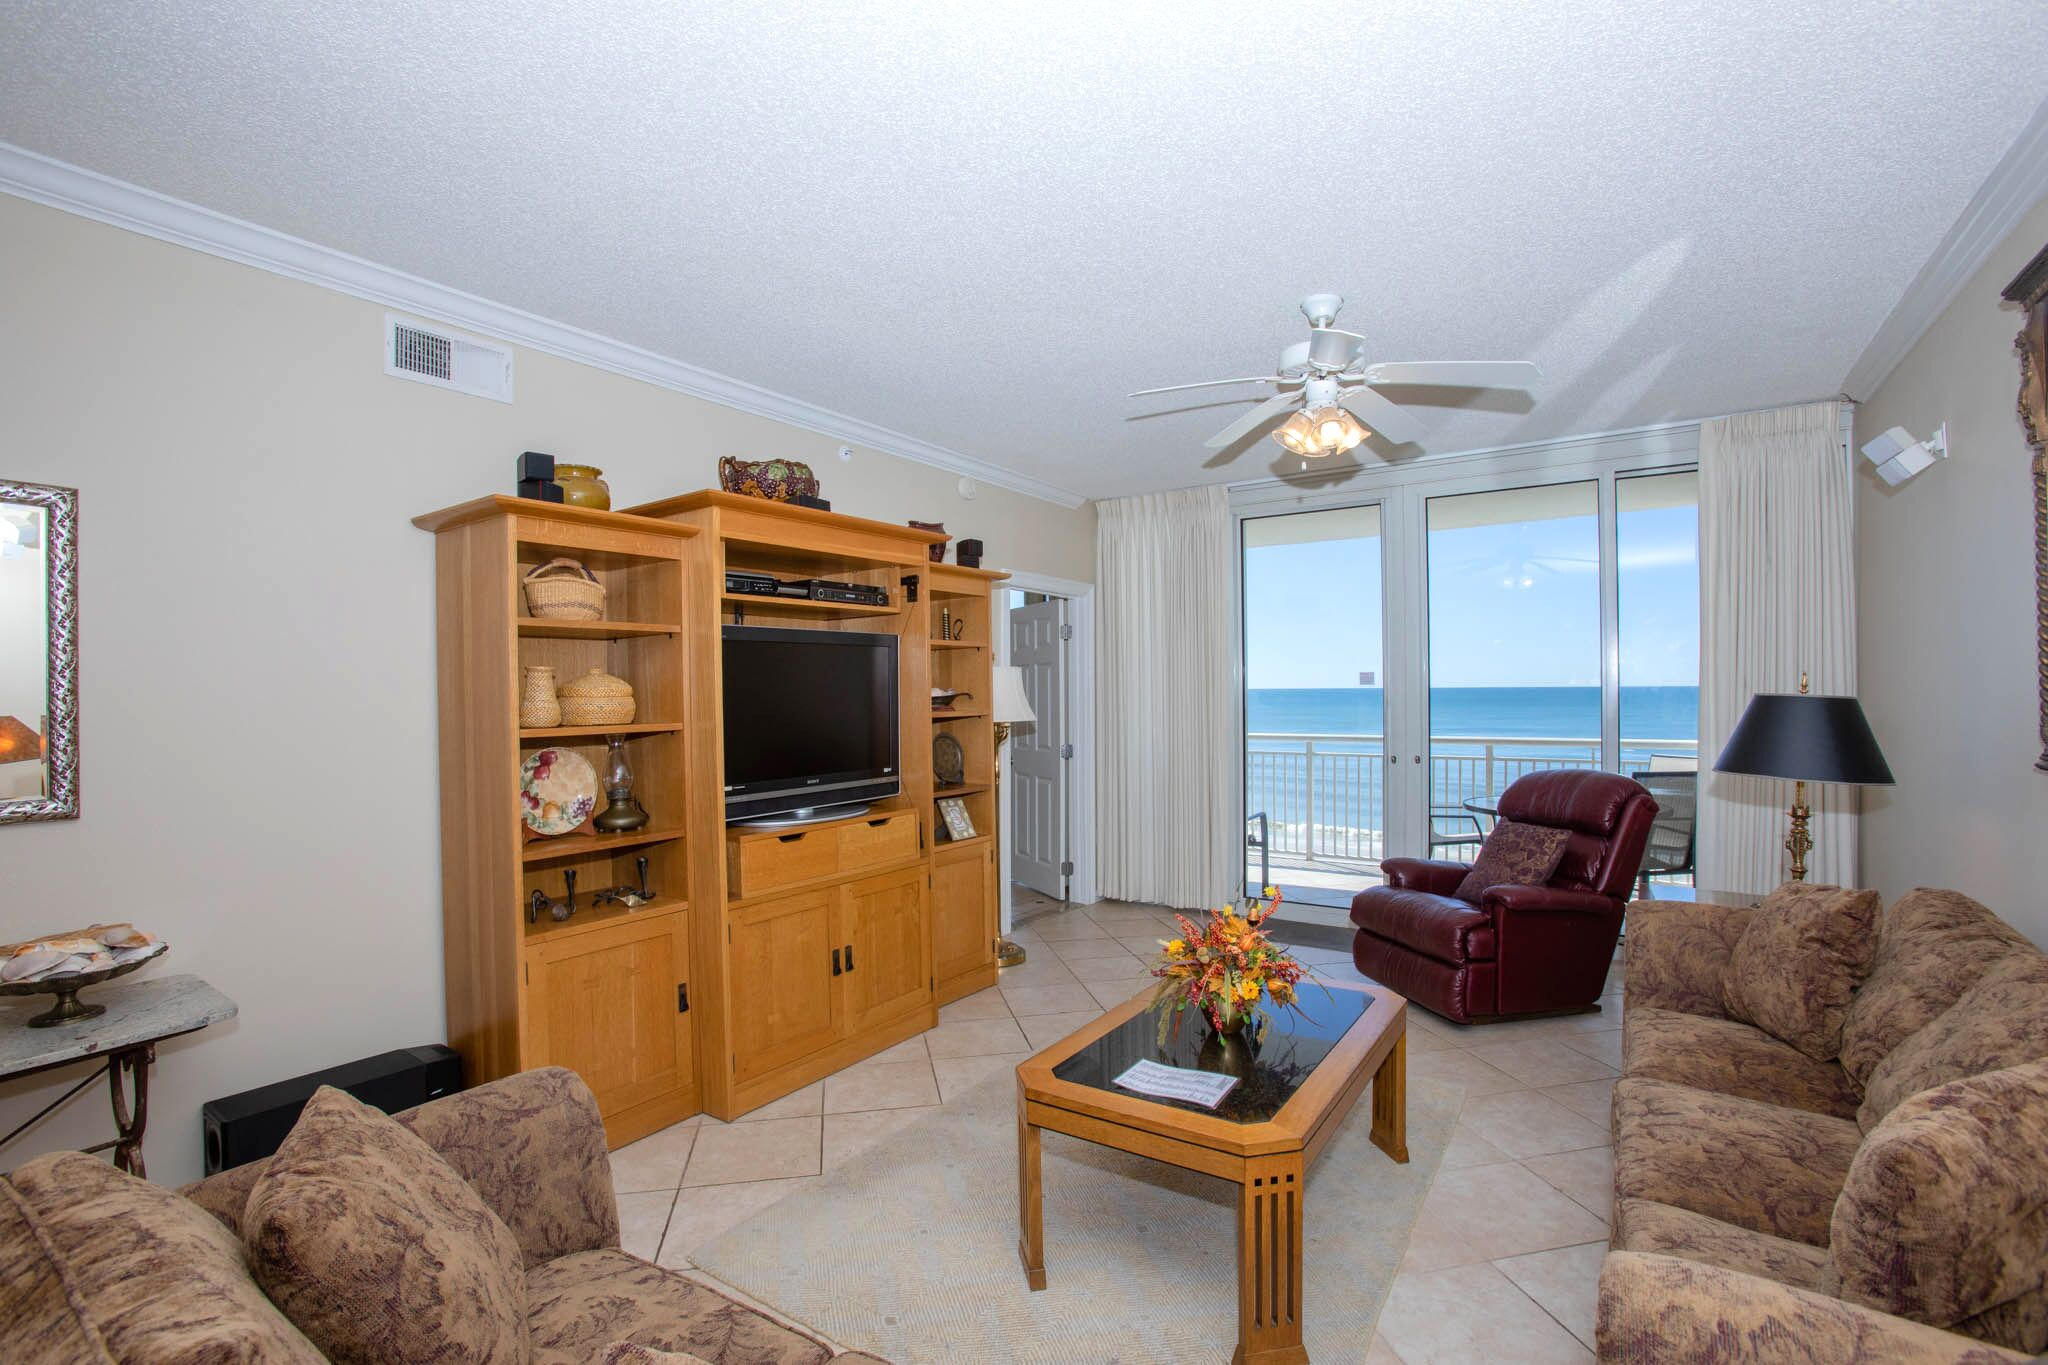 The Pearl of Navarre #504 Condo rental in The Pearl of Navarre Beach in Navarre Florida - #3